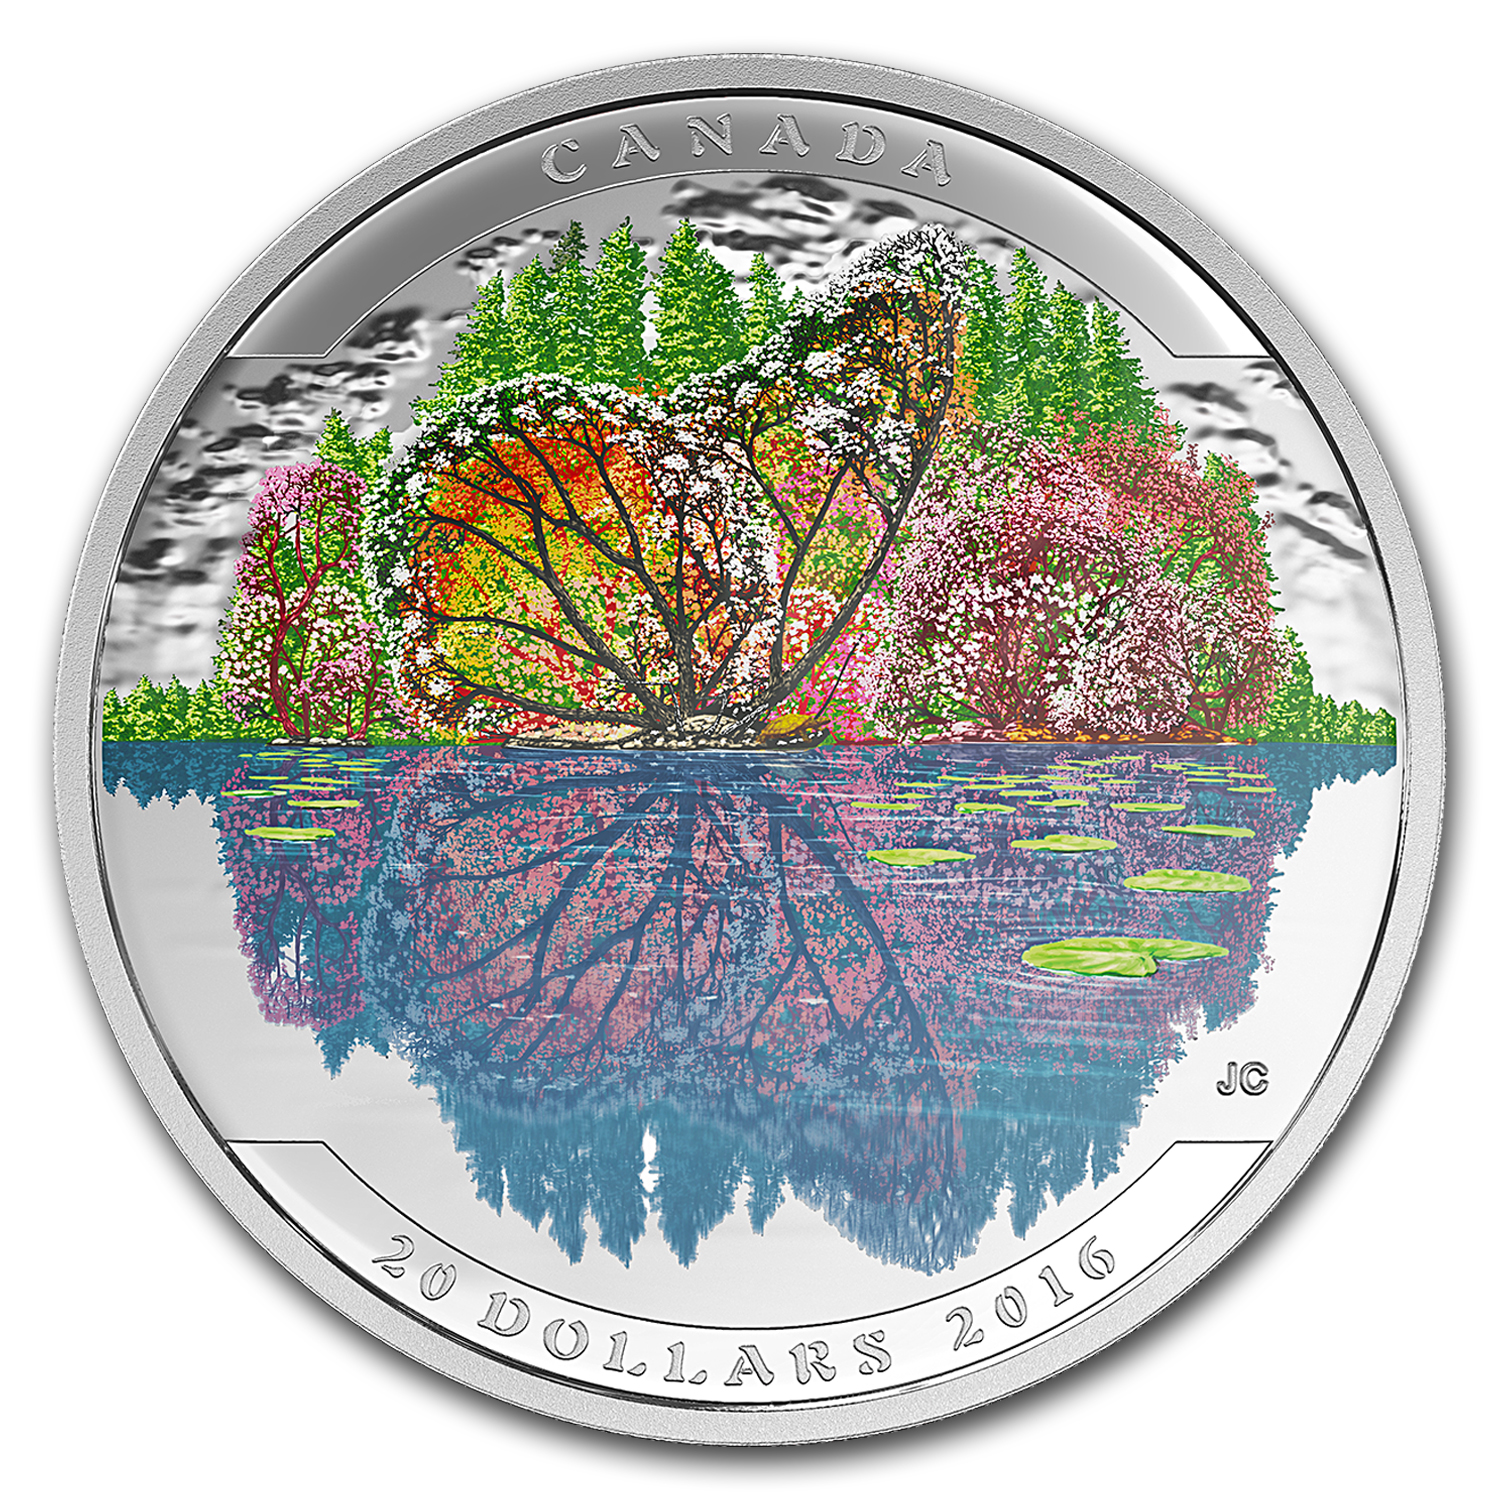 2016 Canada 1 oz Silver $20 Landscape Illusion: Butterfly